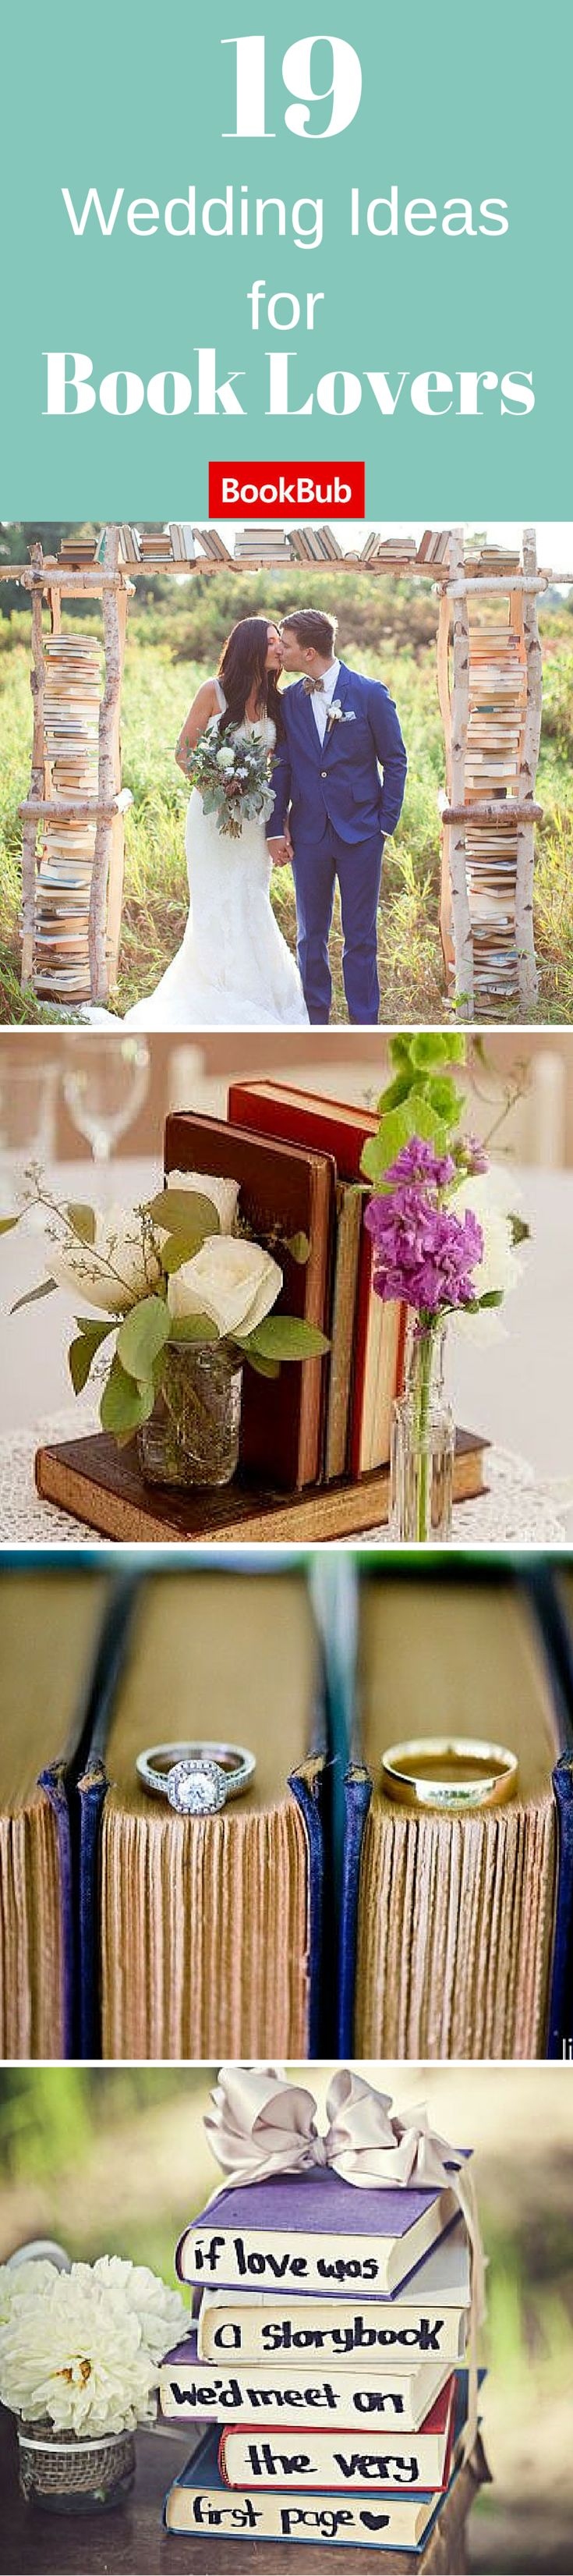 These unique wedding ideas show you how to incorporate books into celebration!